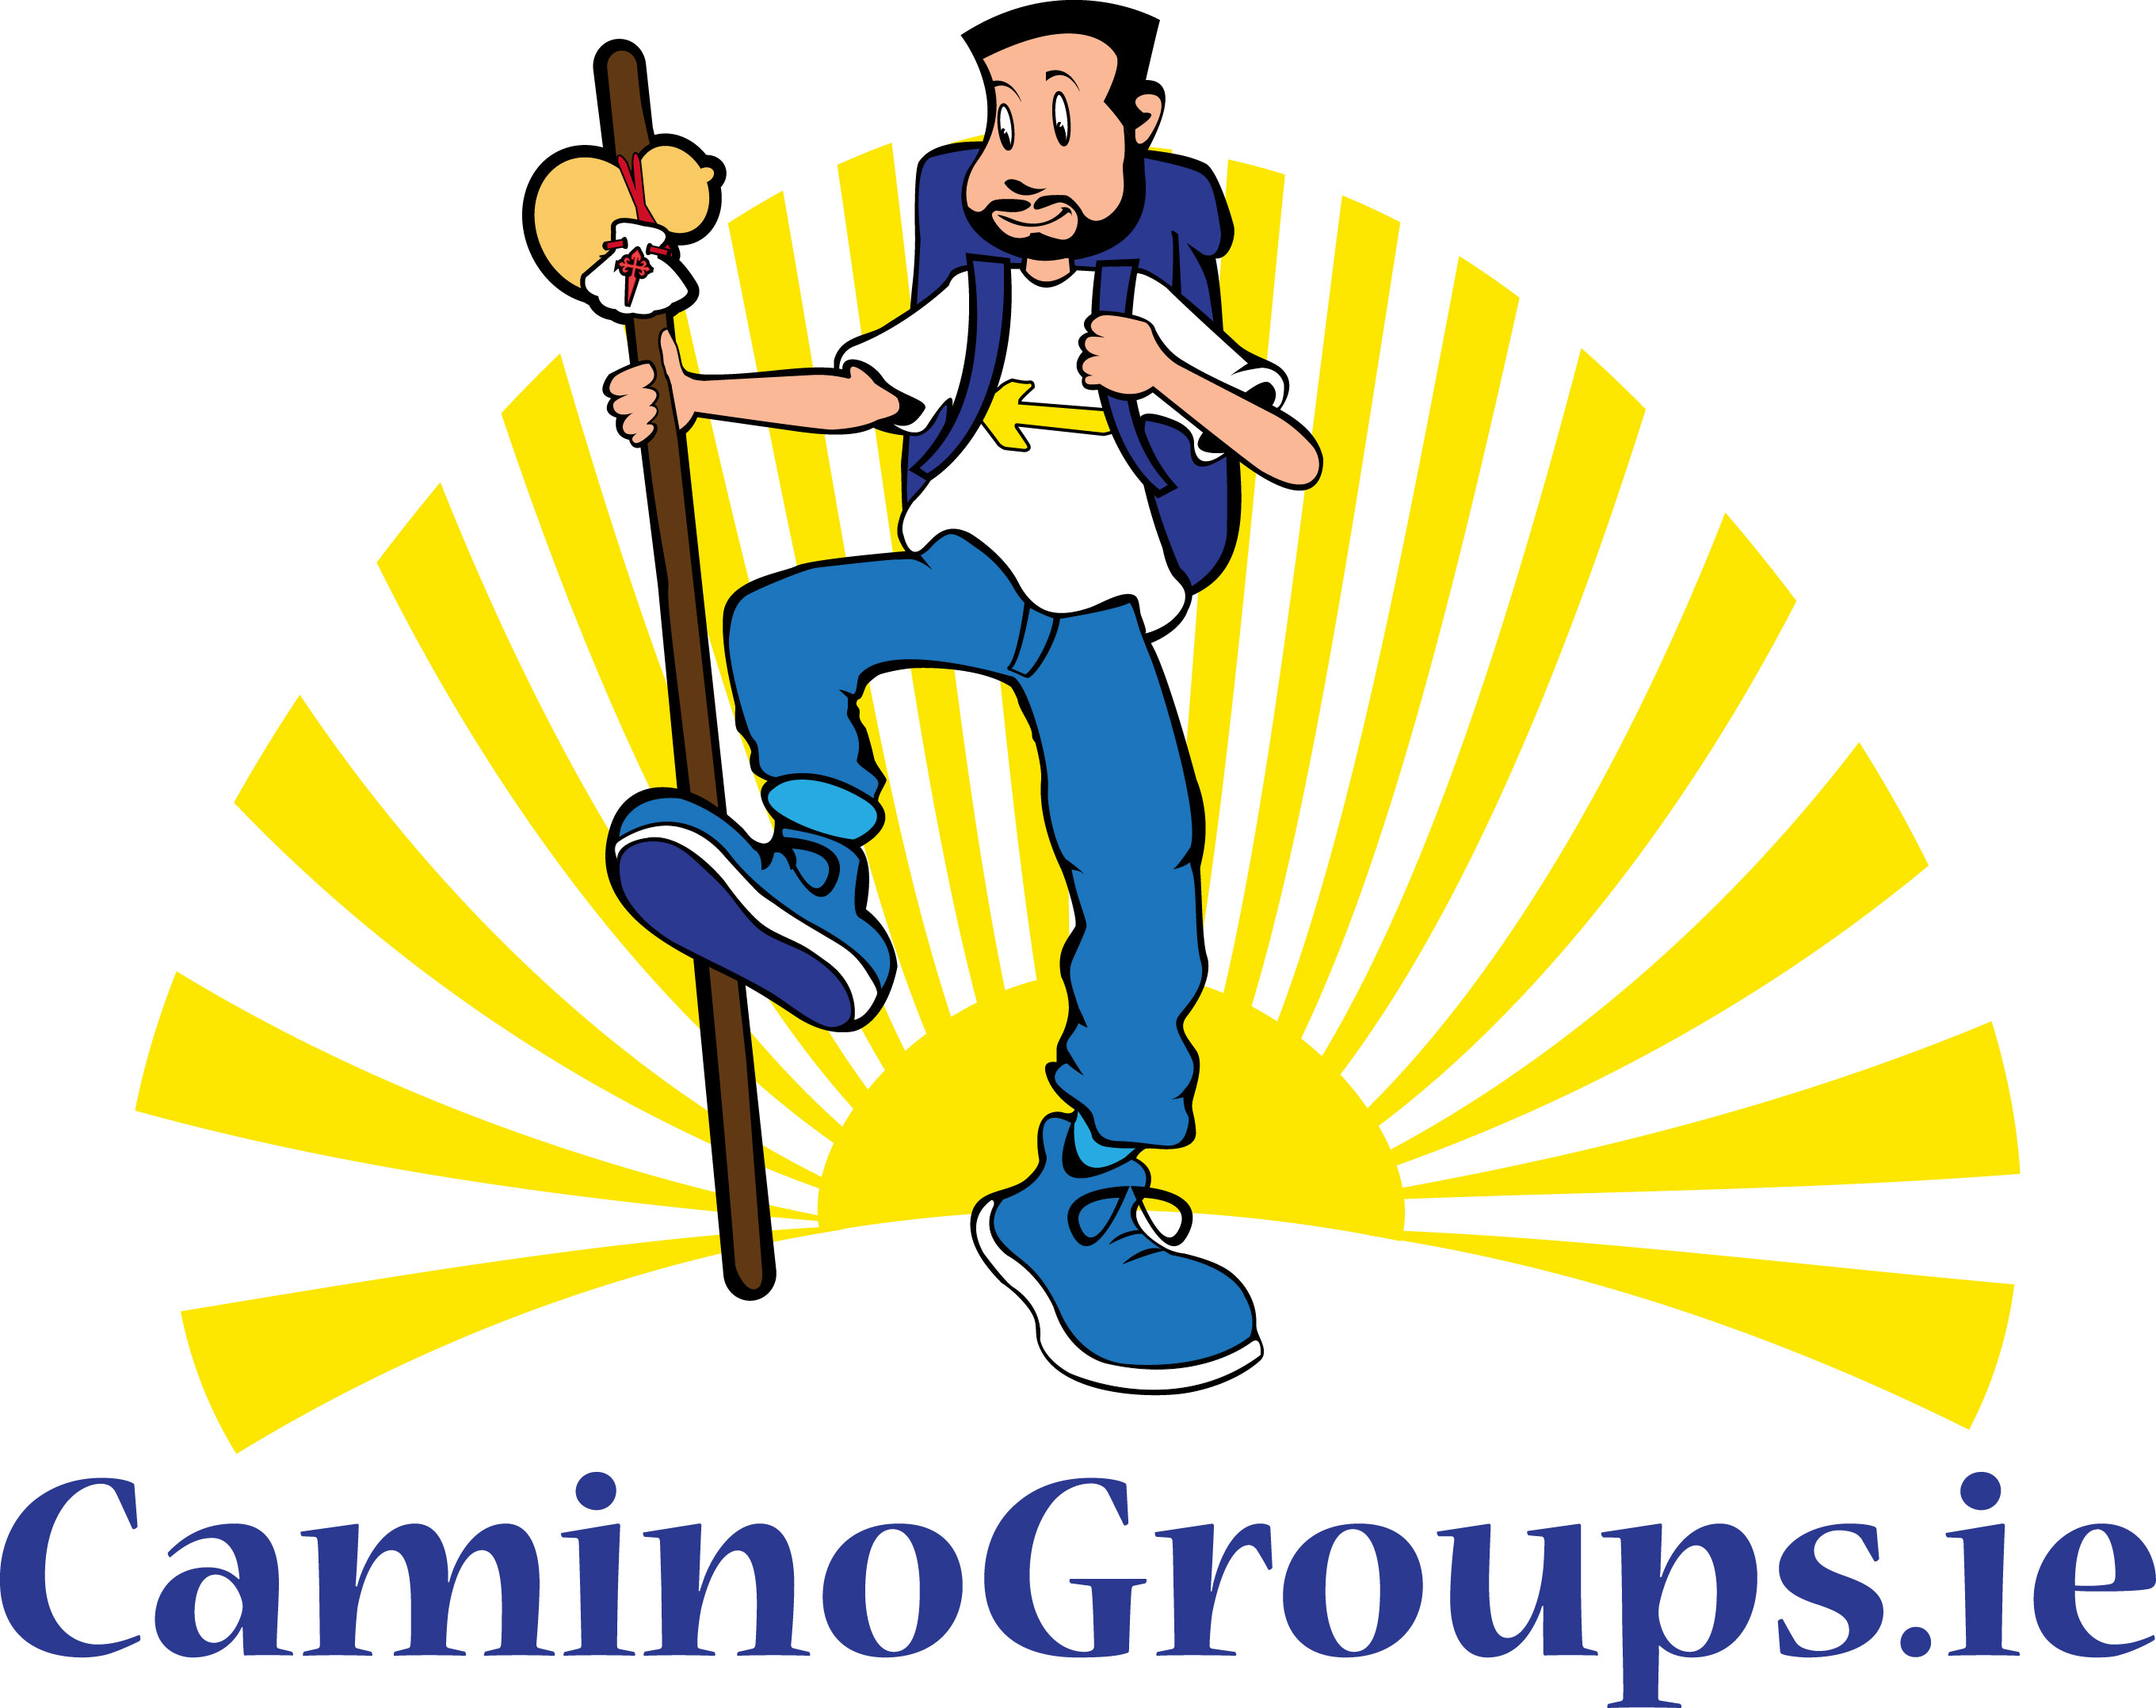 CaminoGroups.ie